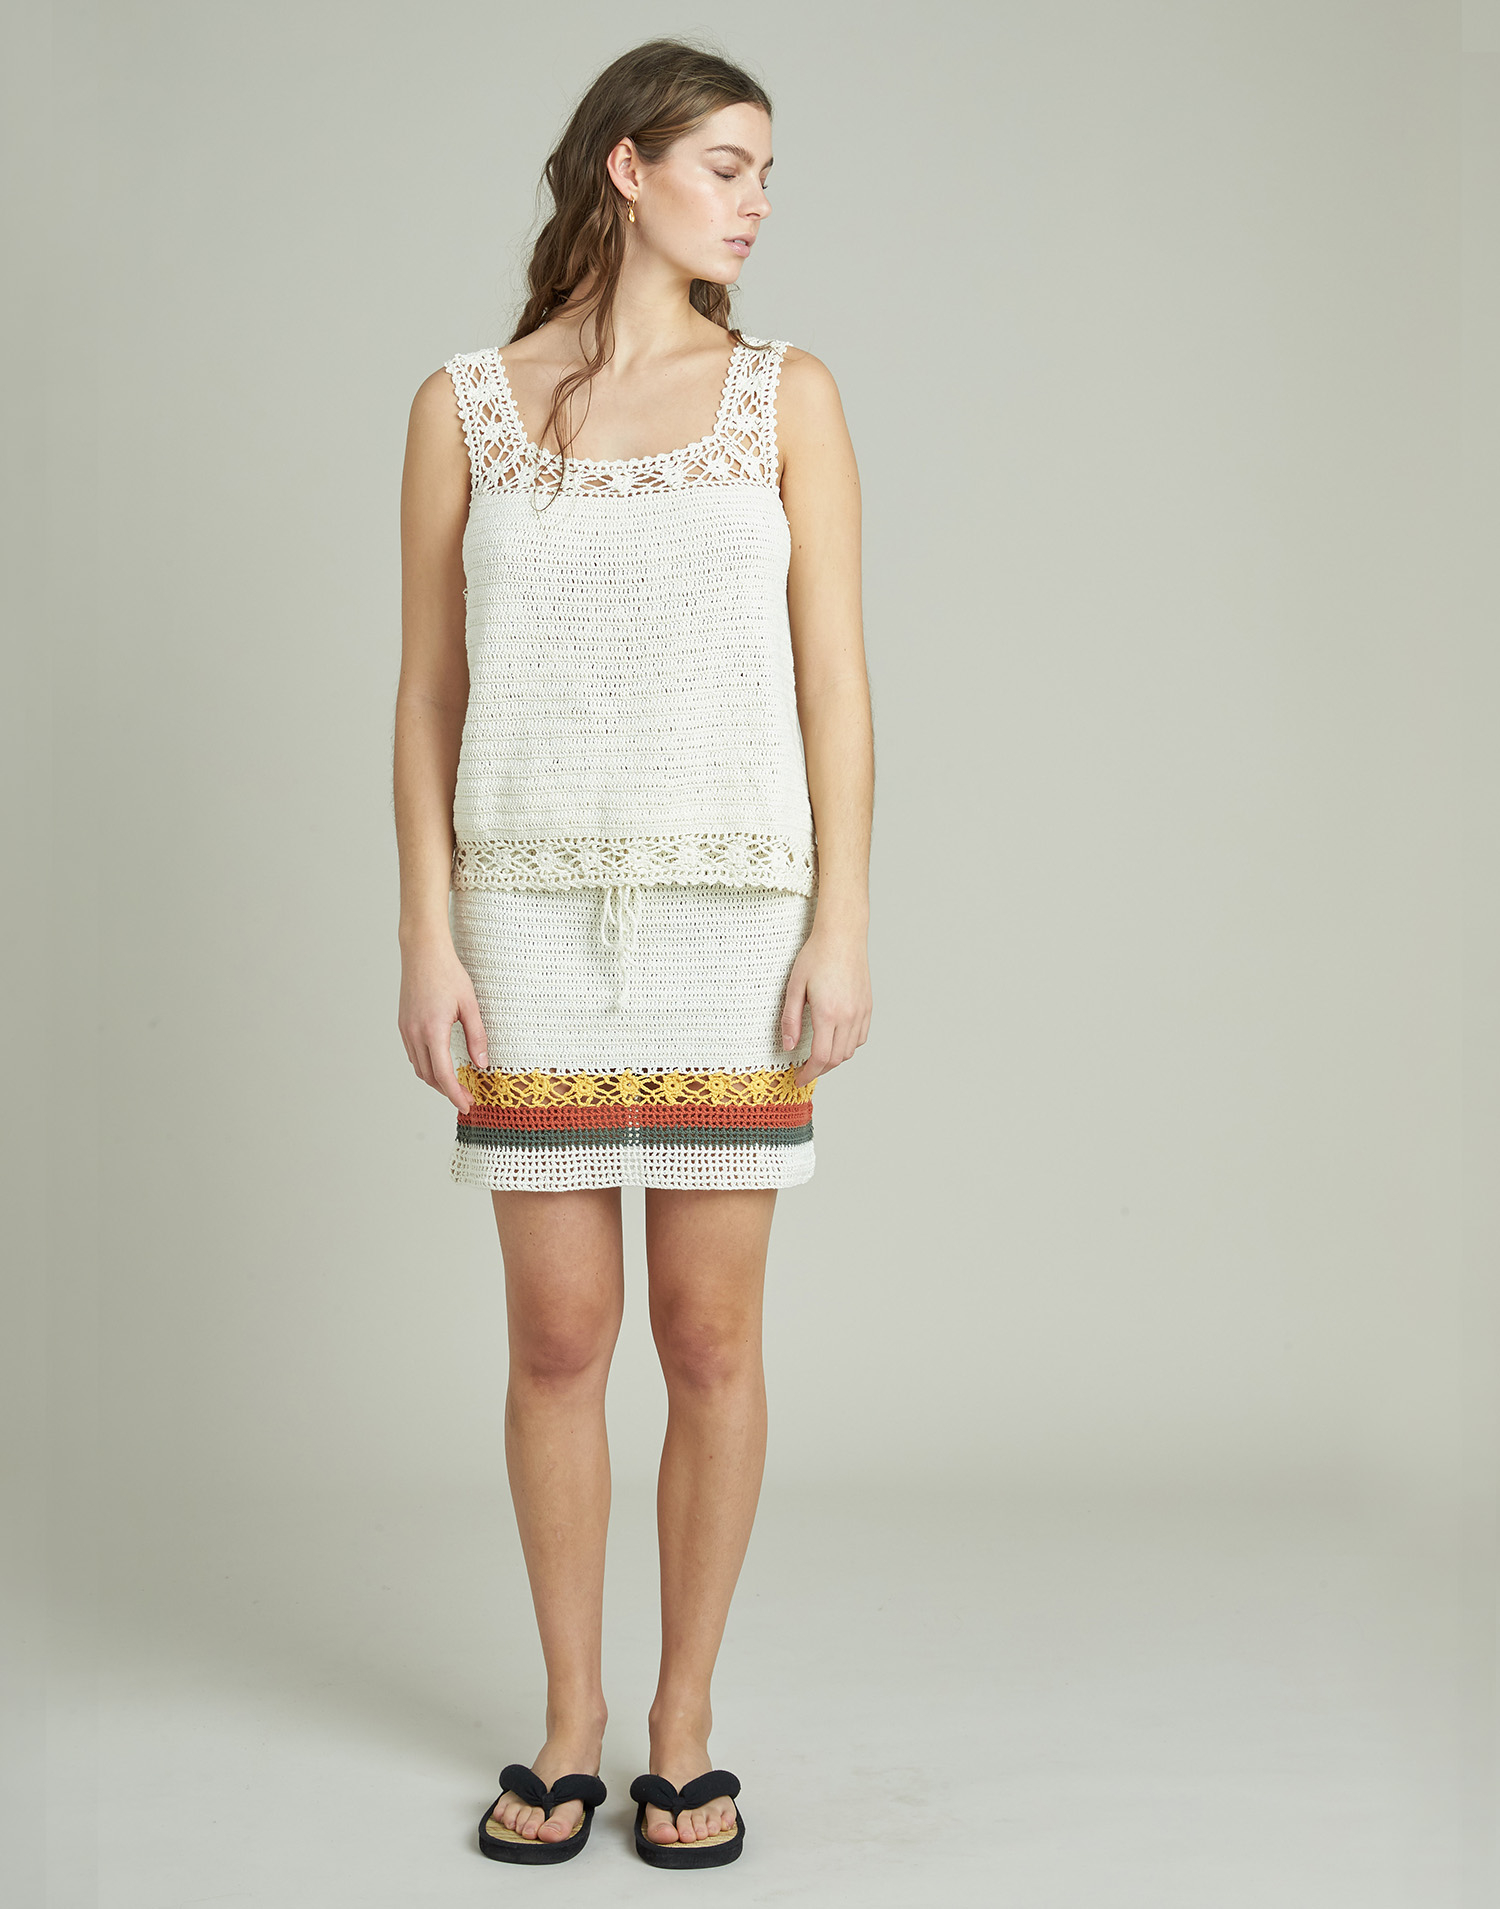 Crochet skirt with positional color stripes